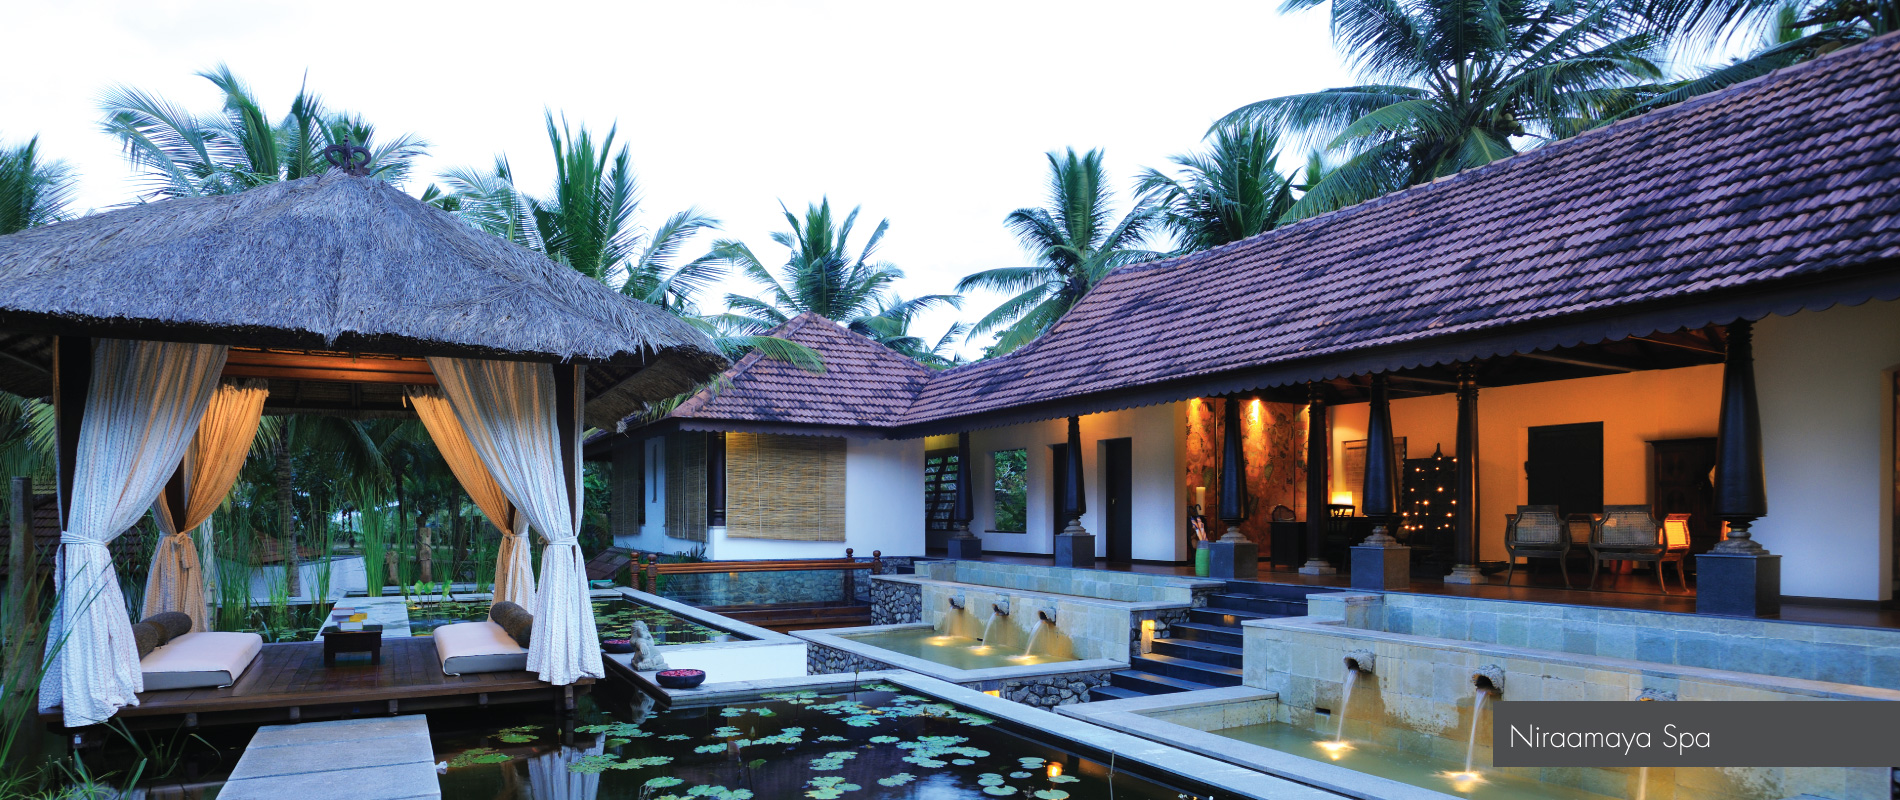 niraamaya-retreat-surya-samudra-spa